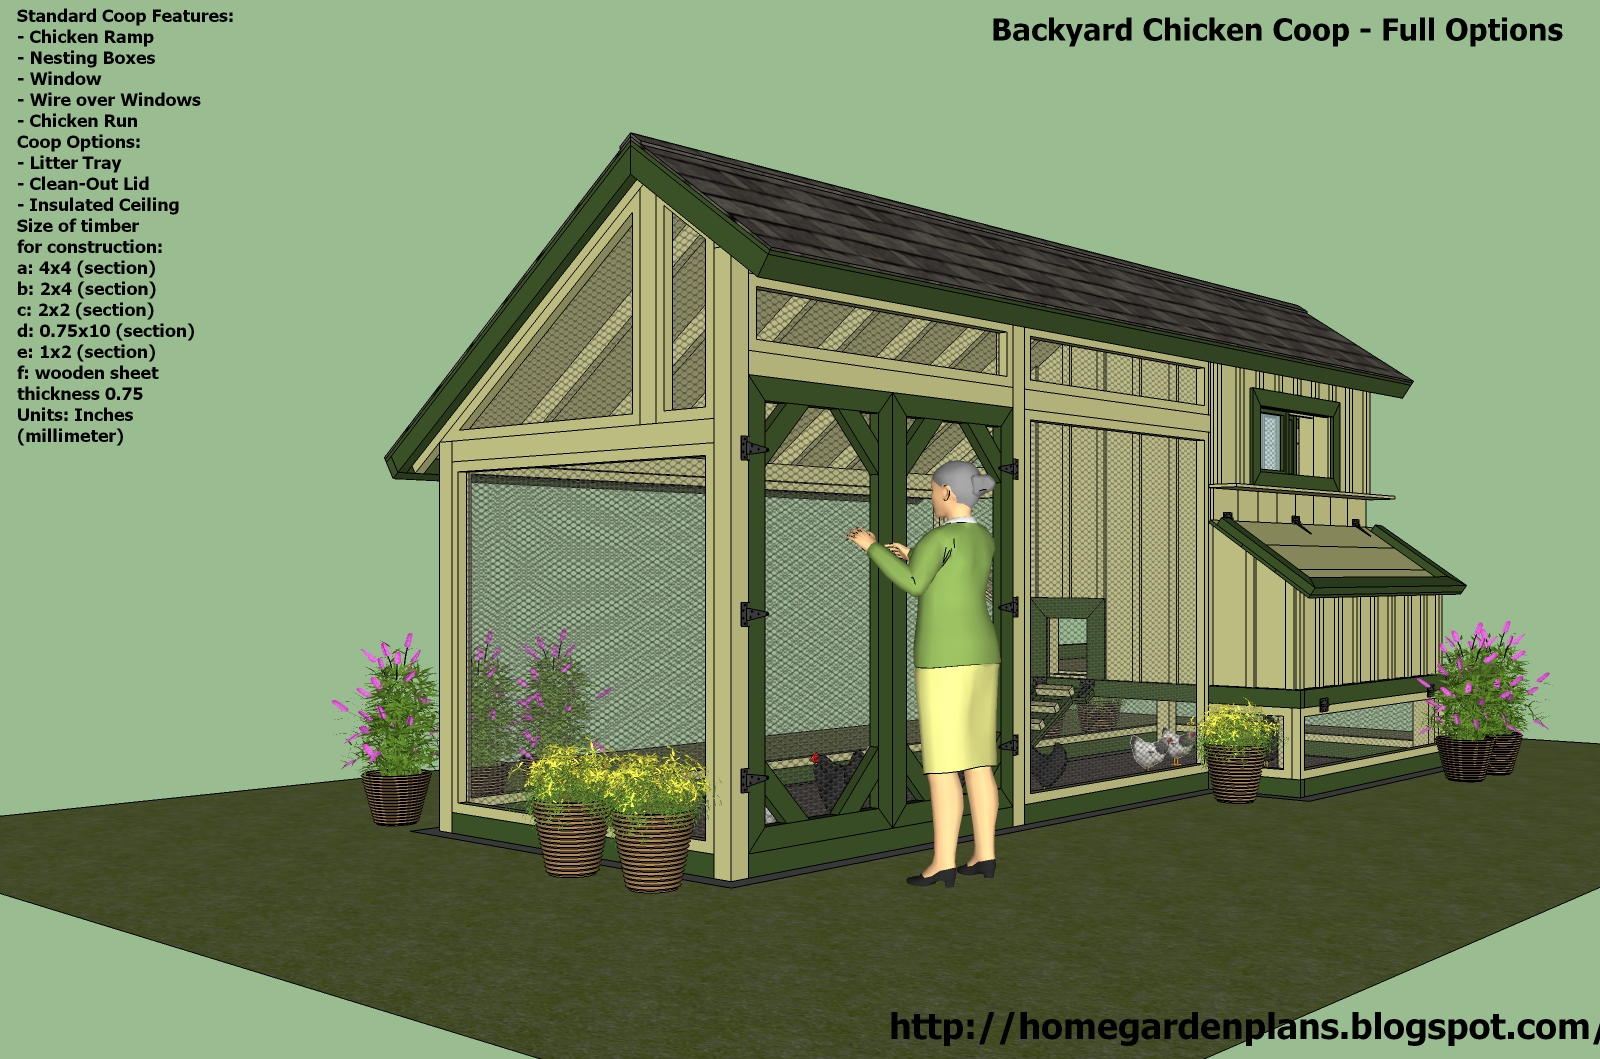 Hens plans chicken coop plans for 12 birds for Plans for a chicken coop for 12 chickens